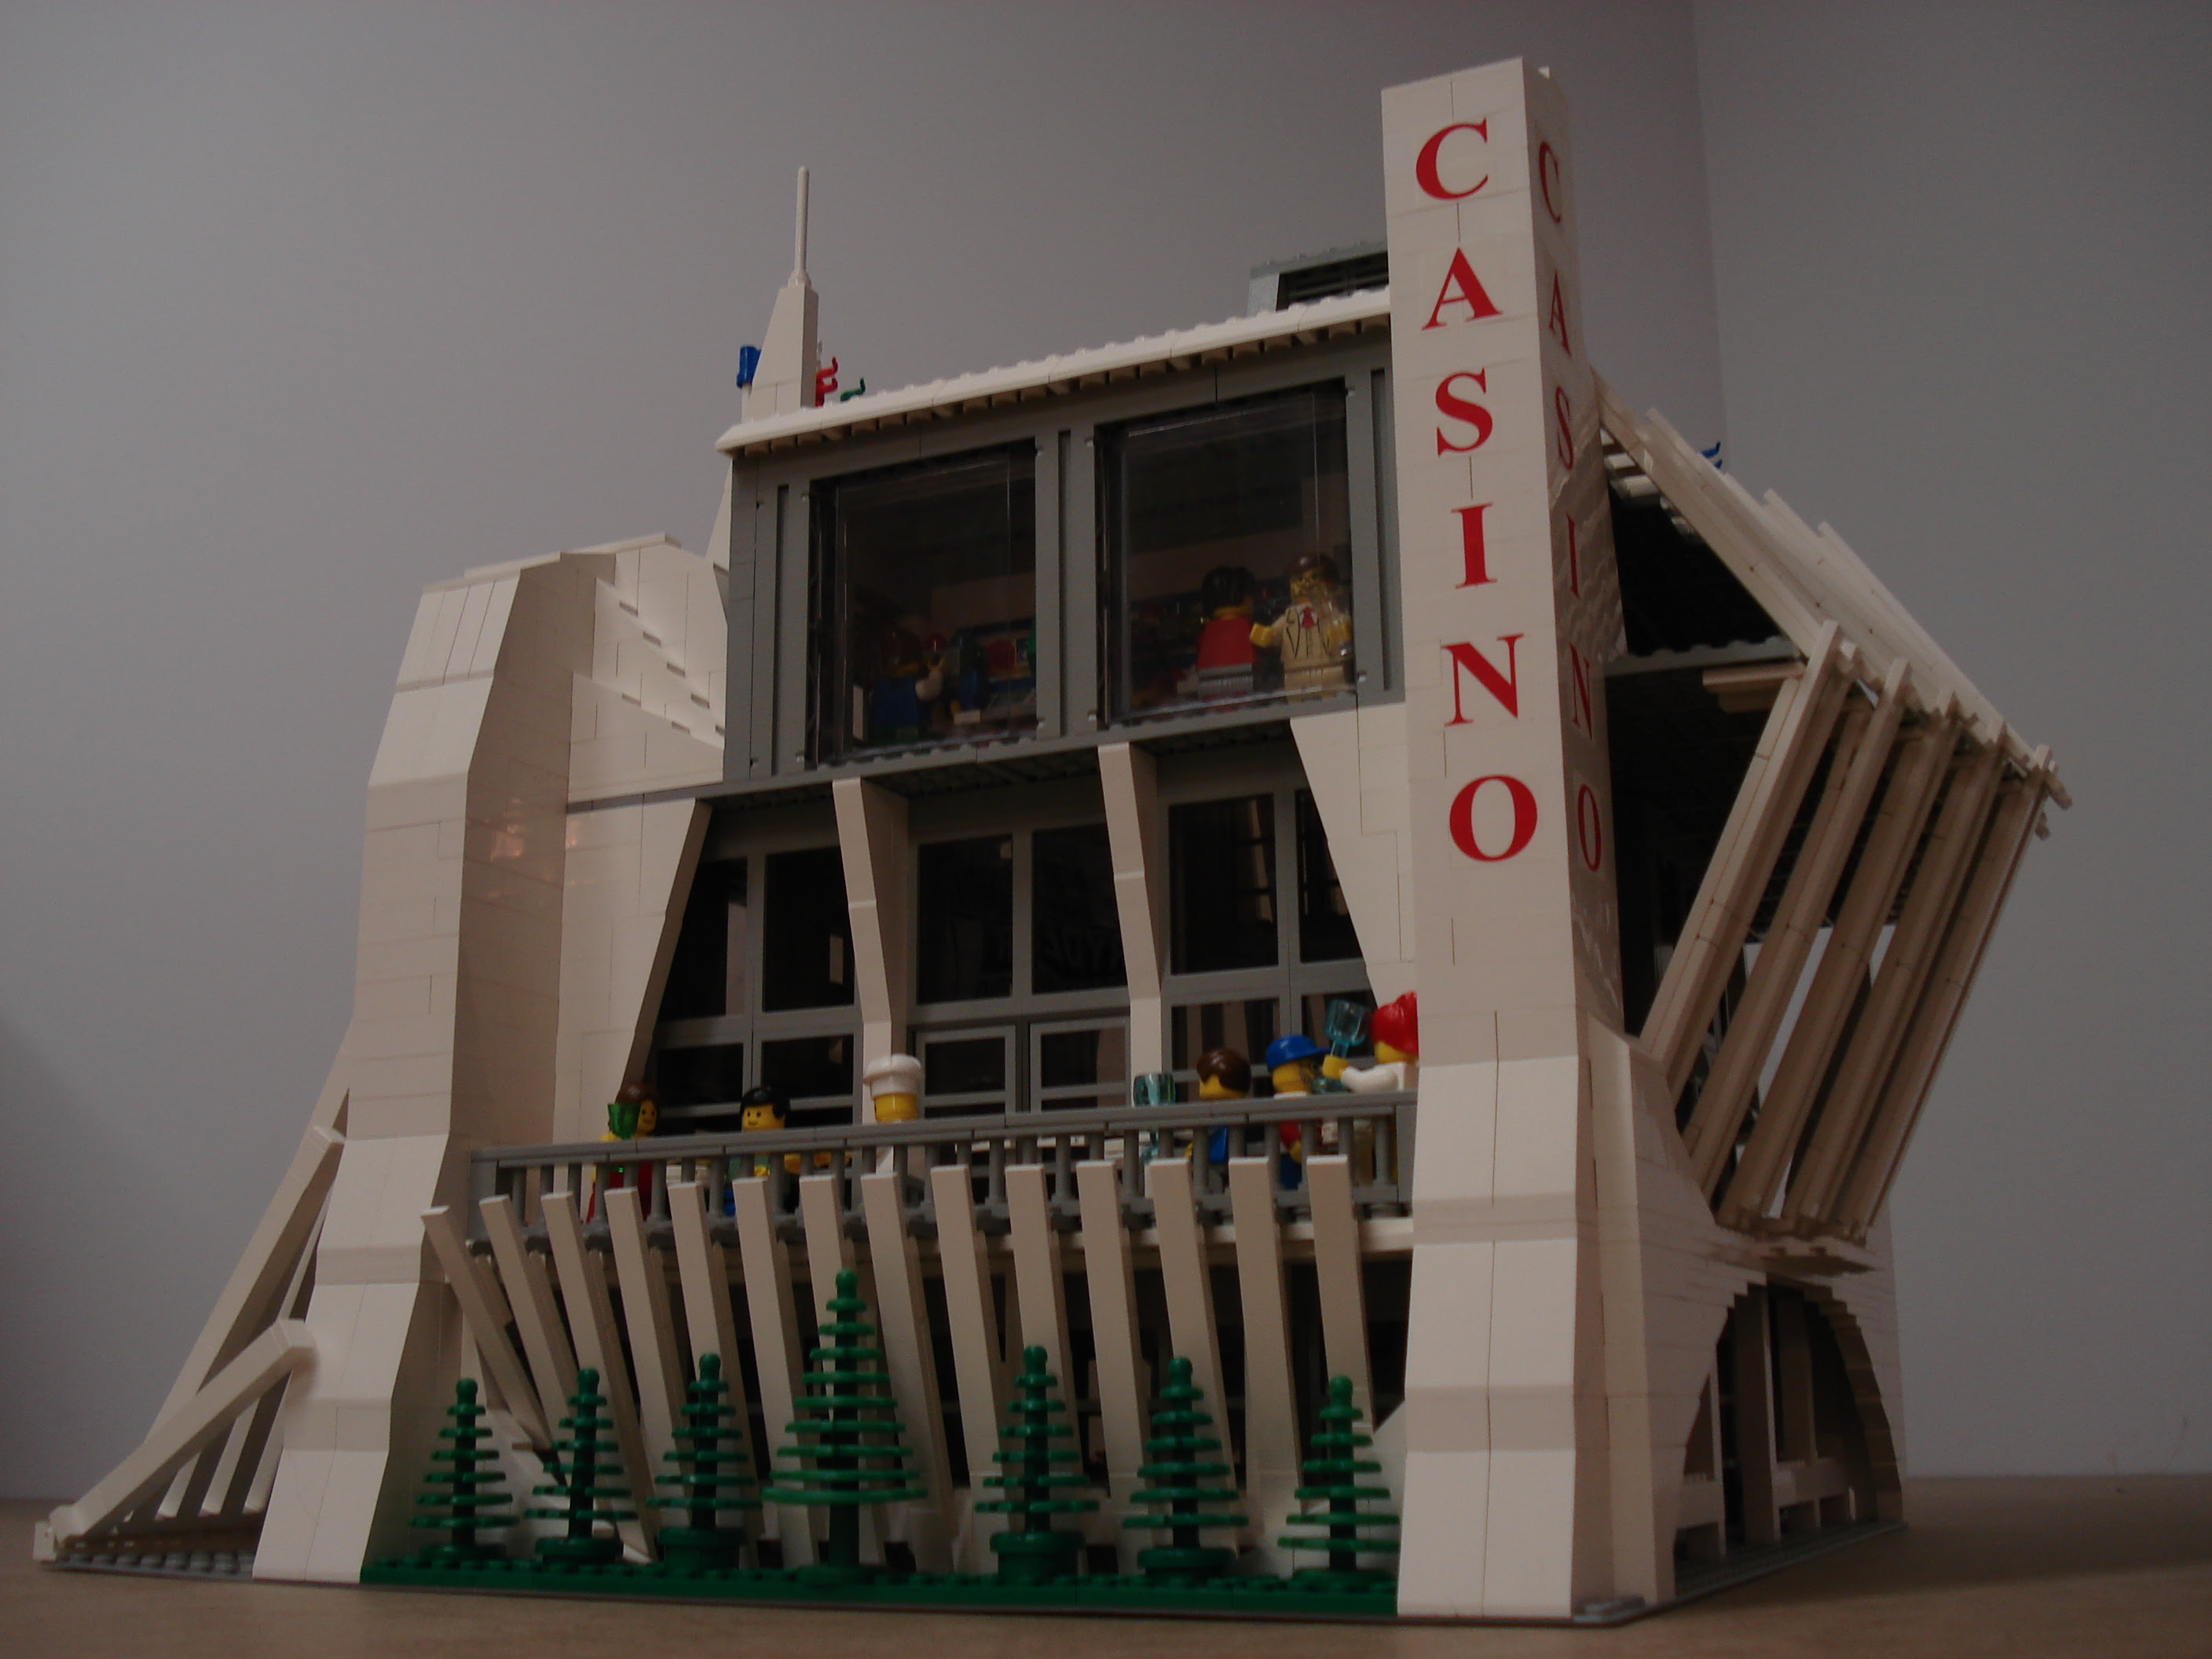 Casino with angled walls